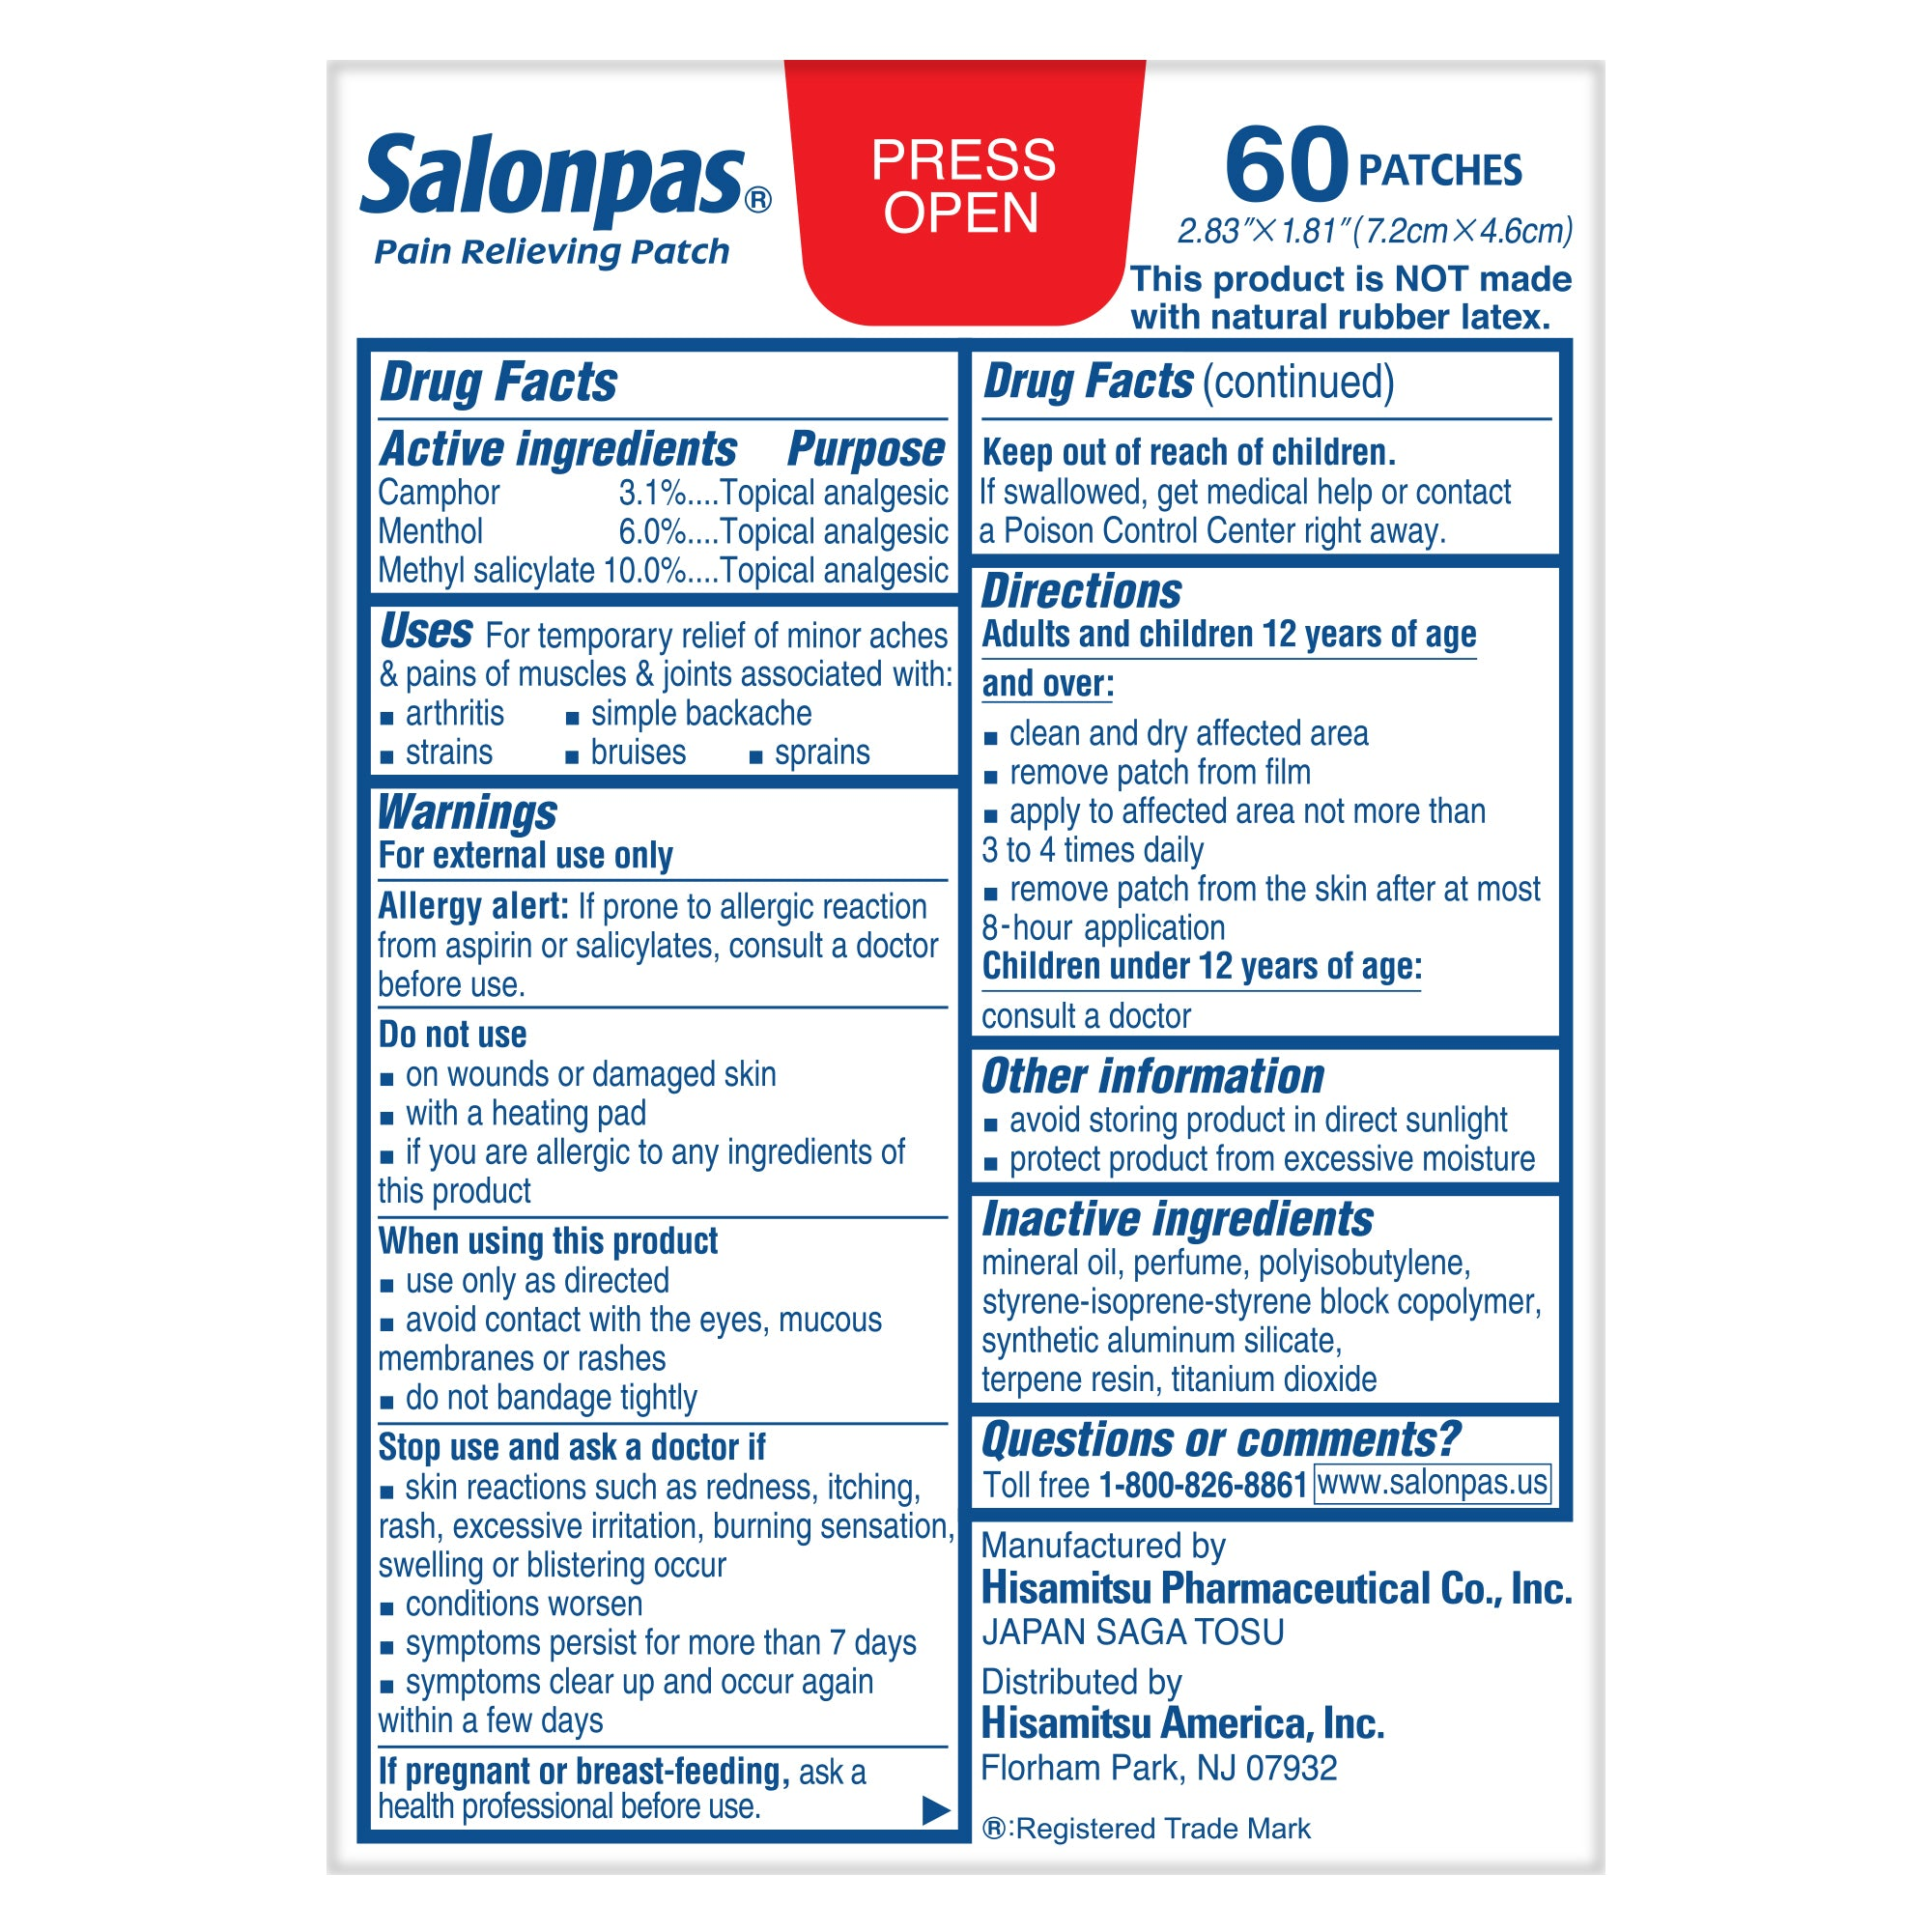 Salonpas Pain Relieving Patch, 8-Hour Pain Relief - 60 Patches